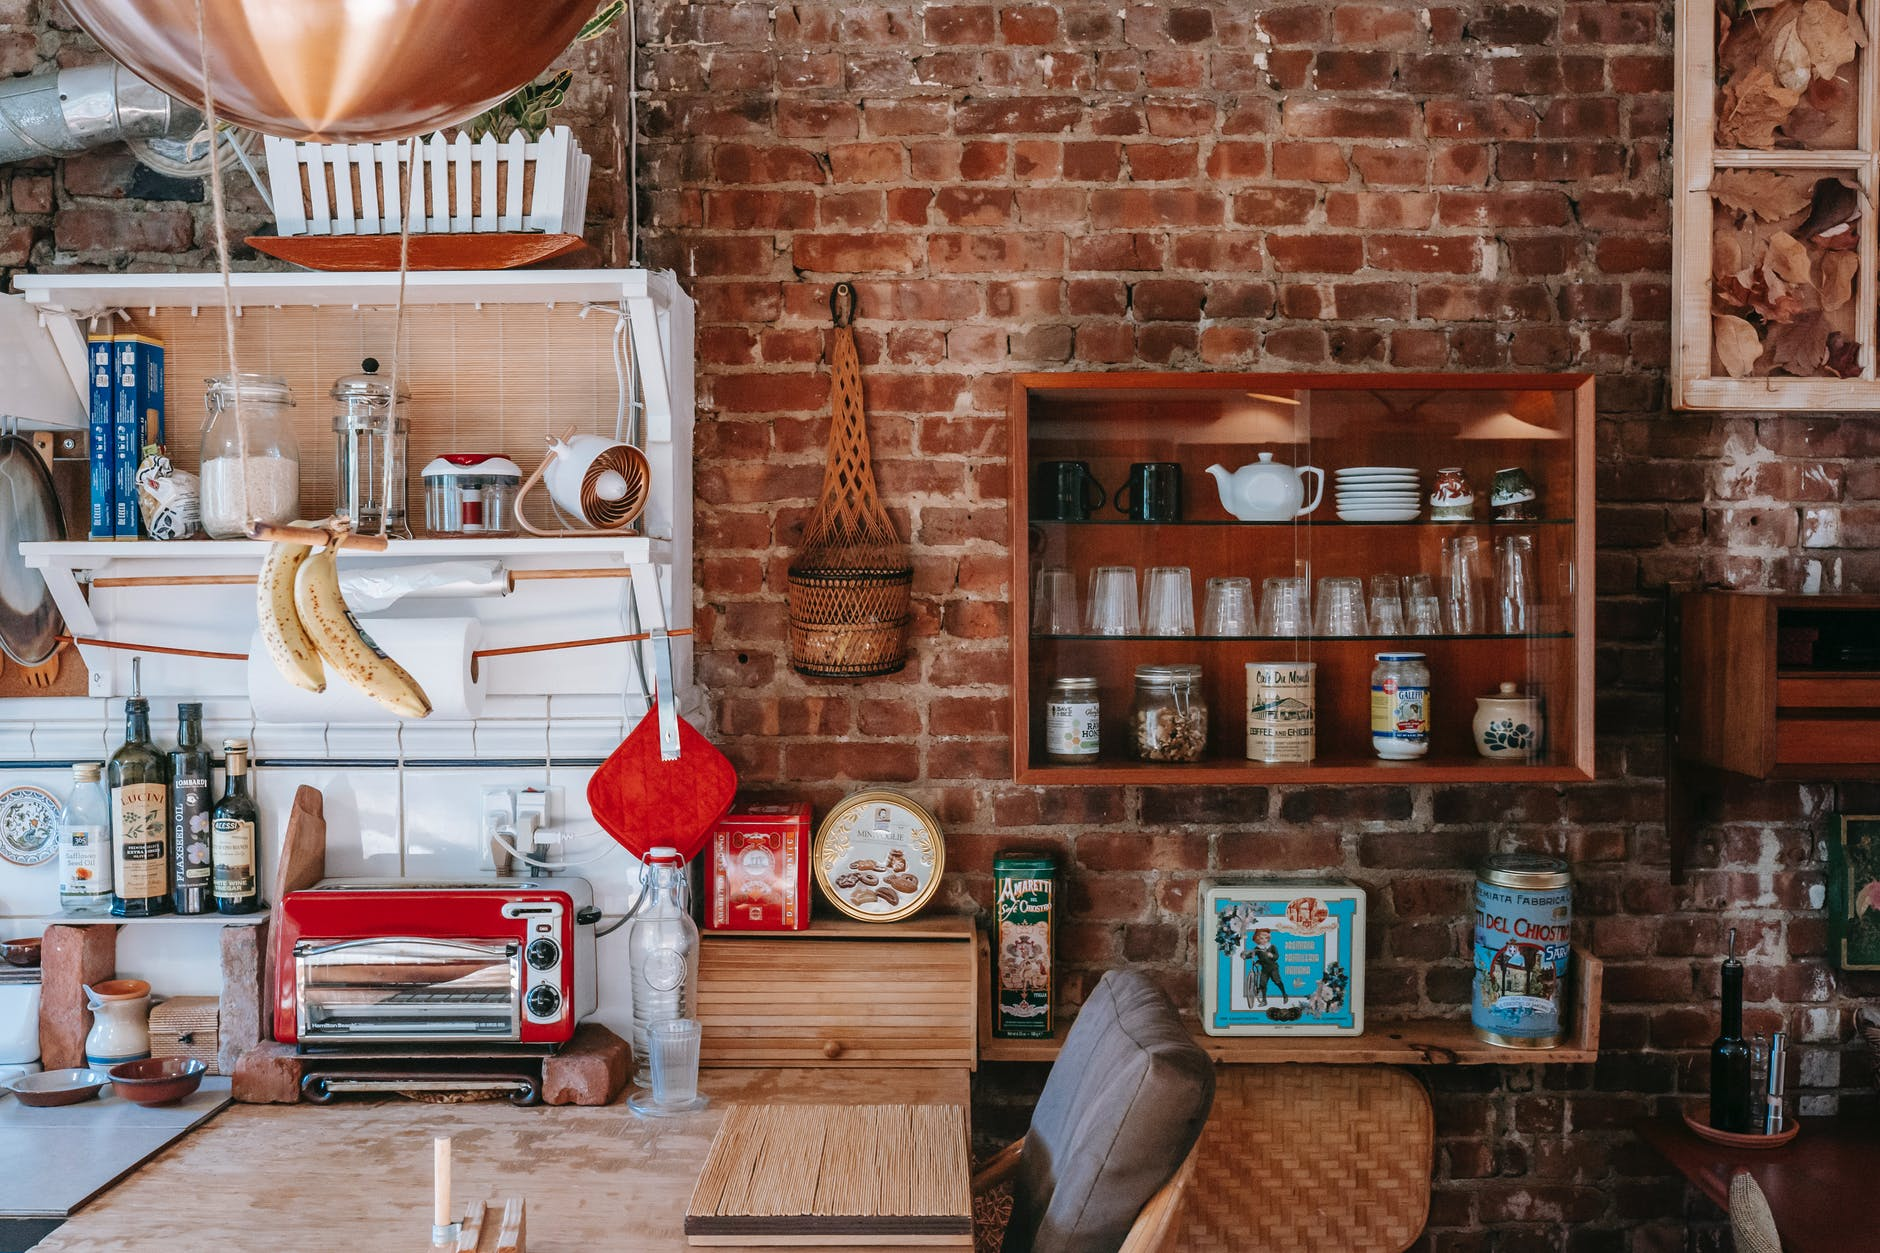 Space-Saving Items You Need to Keep Your Kitchen Organized